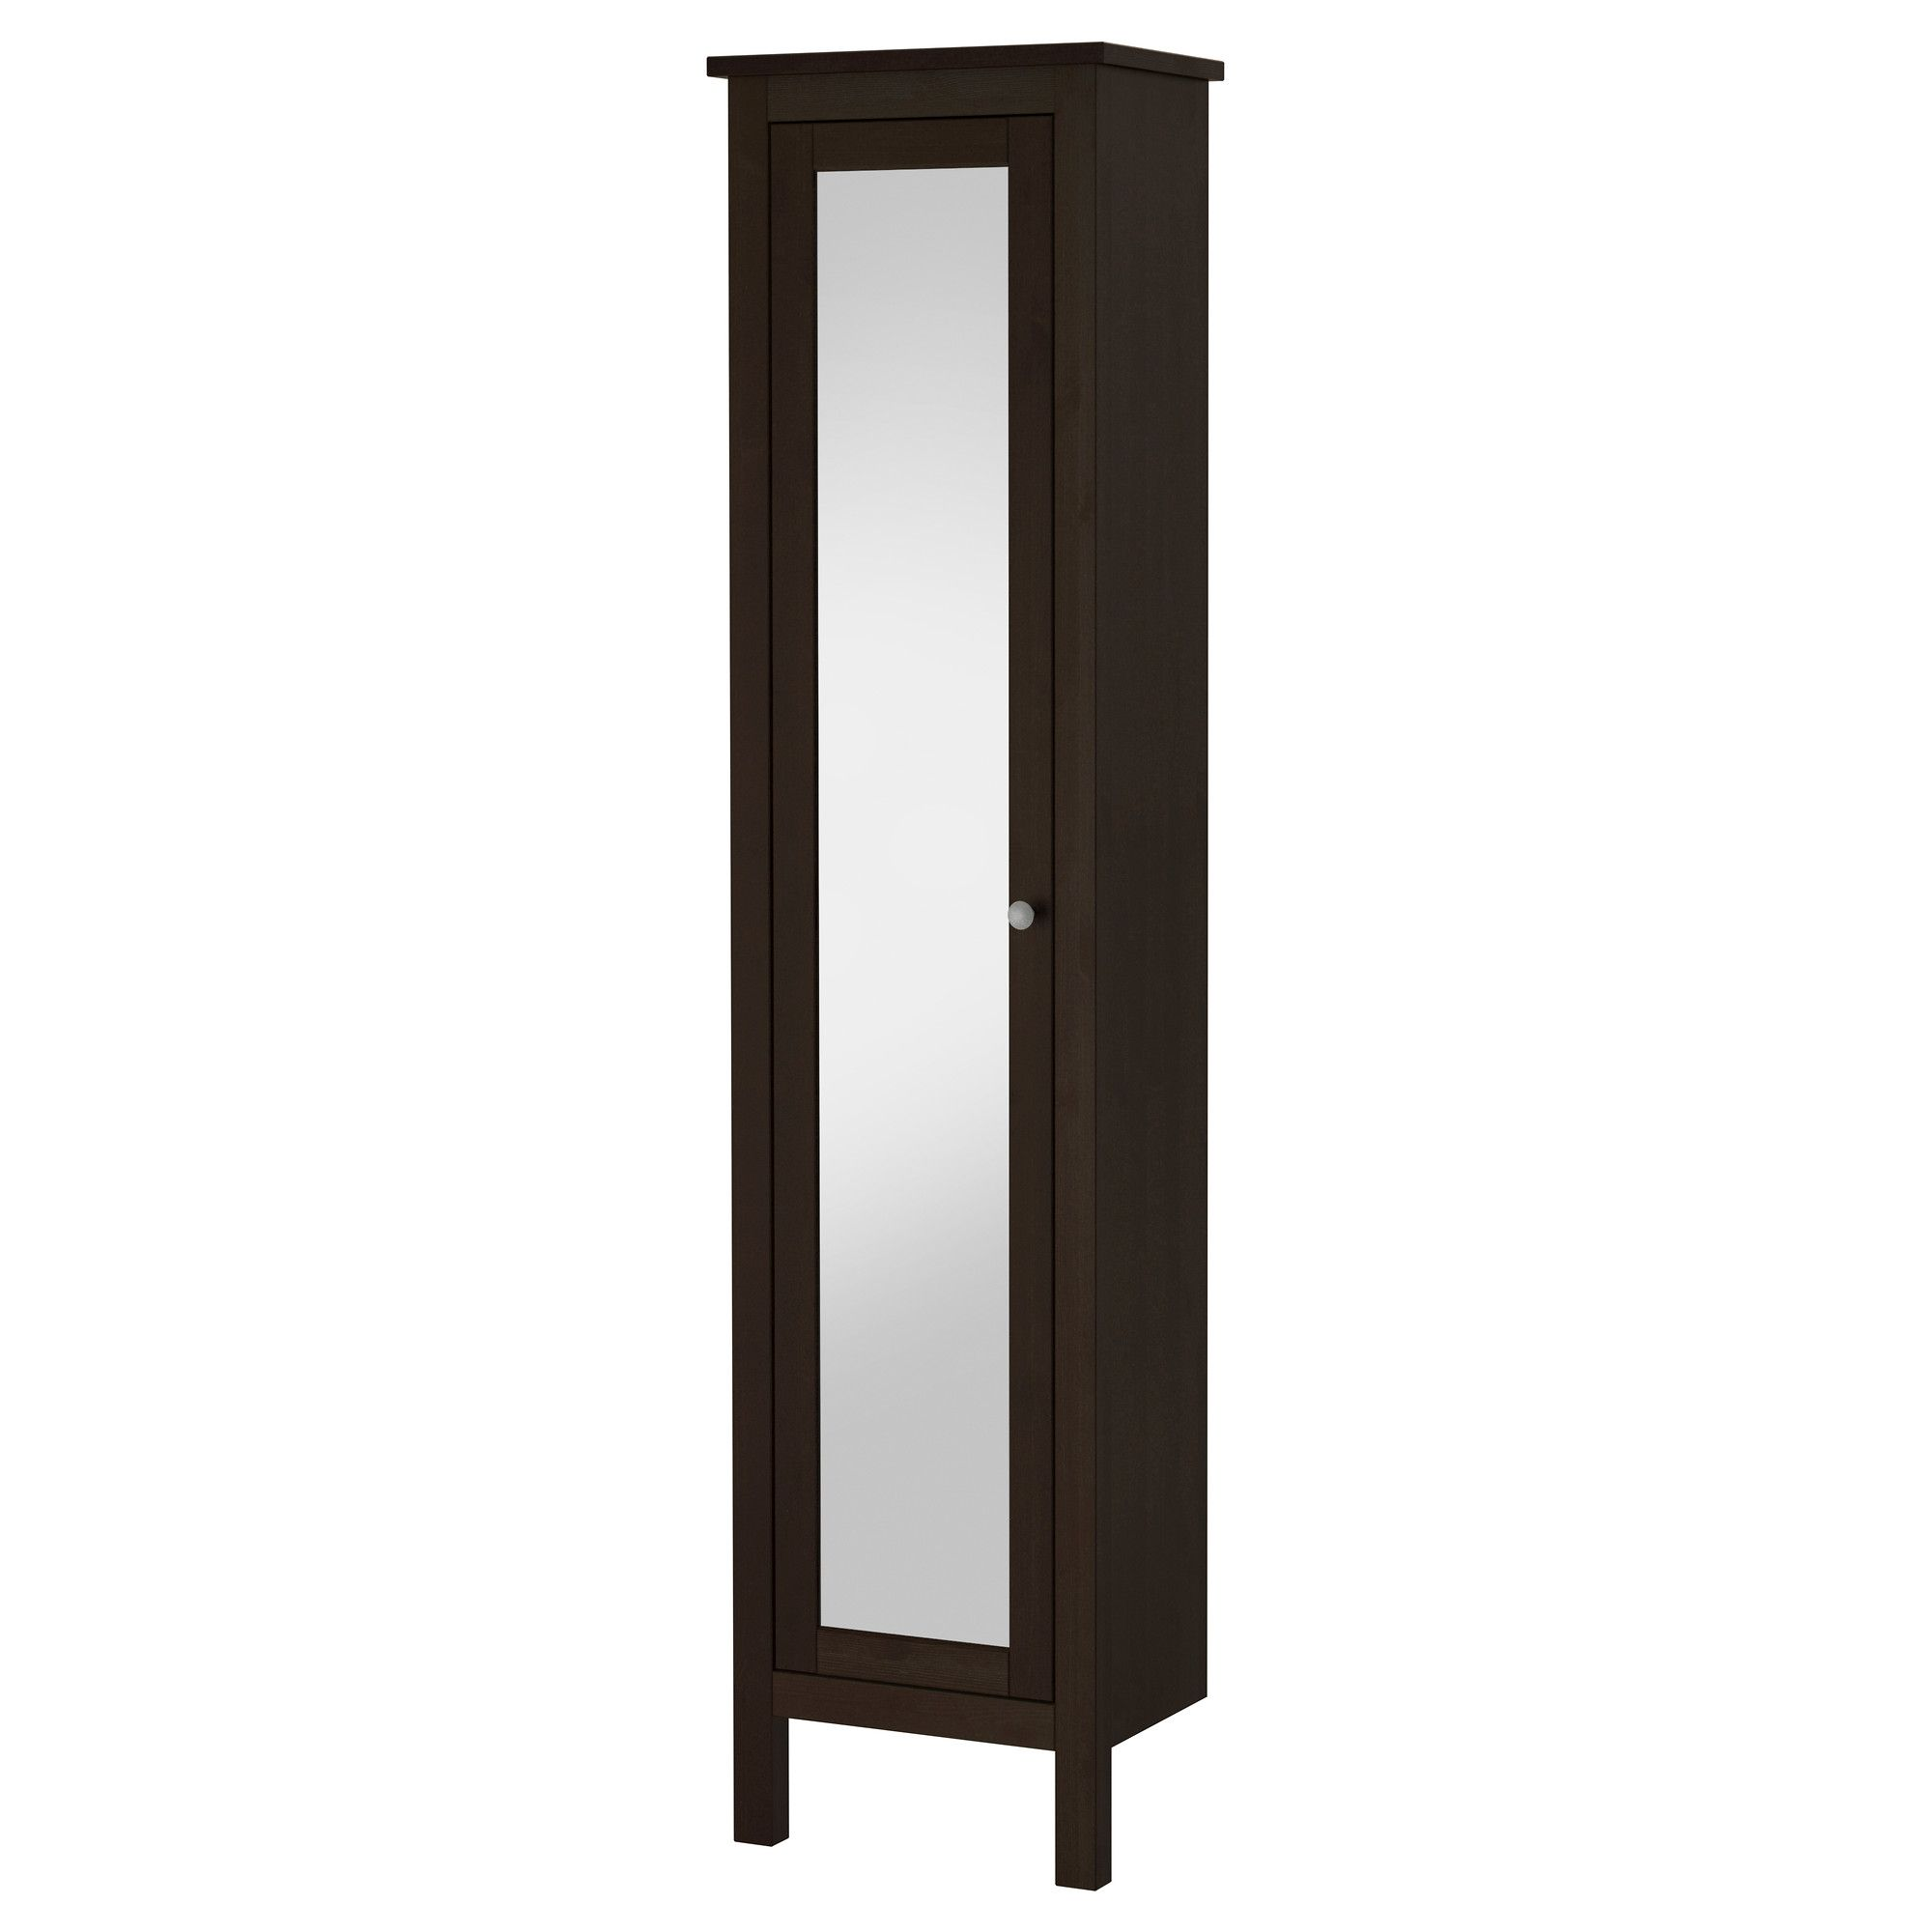 HEMNES High cabinet with mirror door, black-brown stain | Pinterest ...